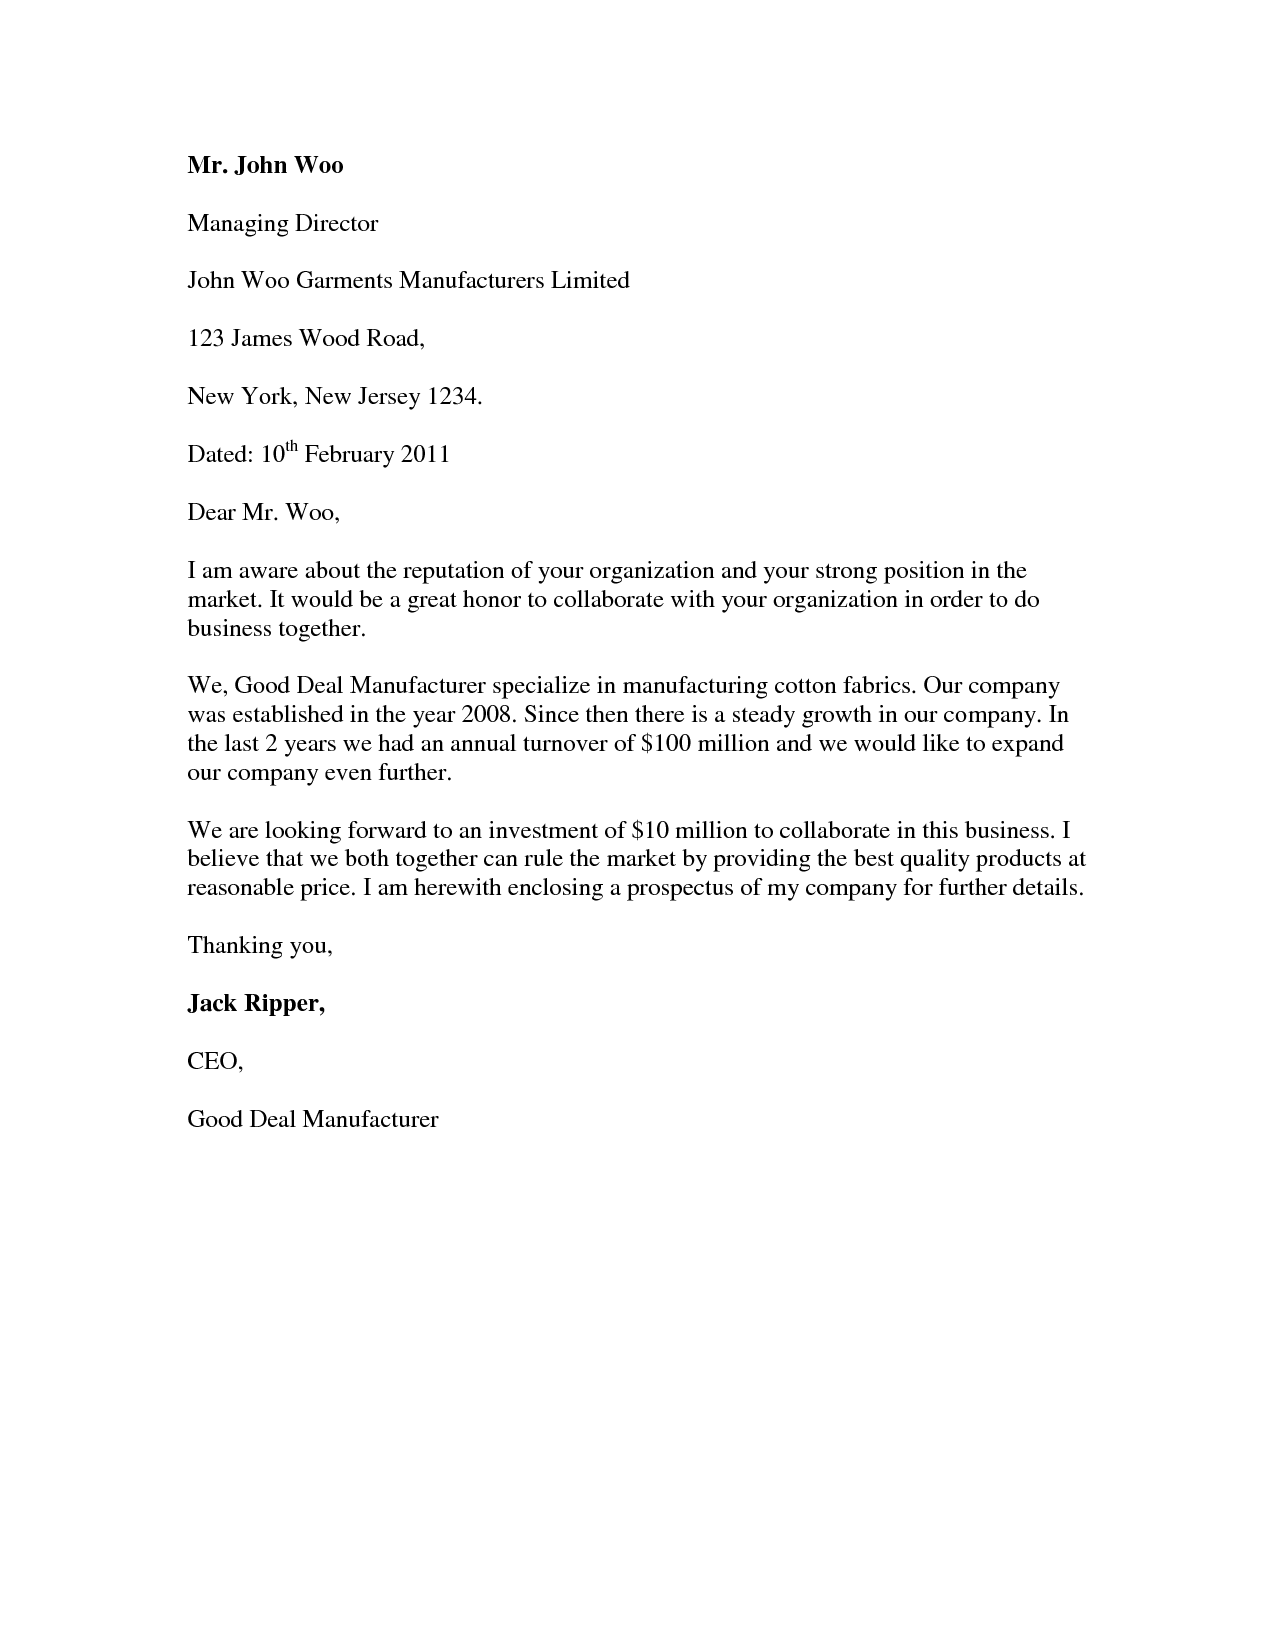 Covering Letter Example Standard Cover Letter With CvSimple ...